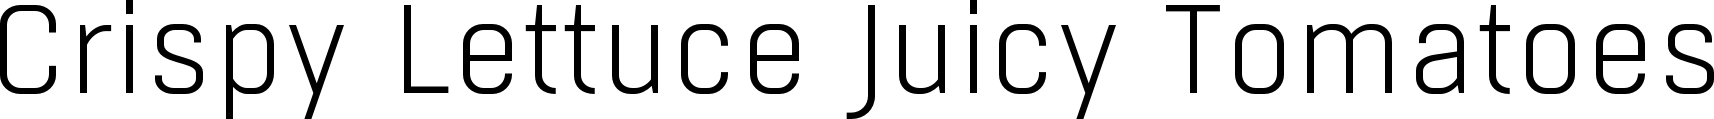 Boxed Light